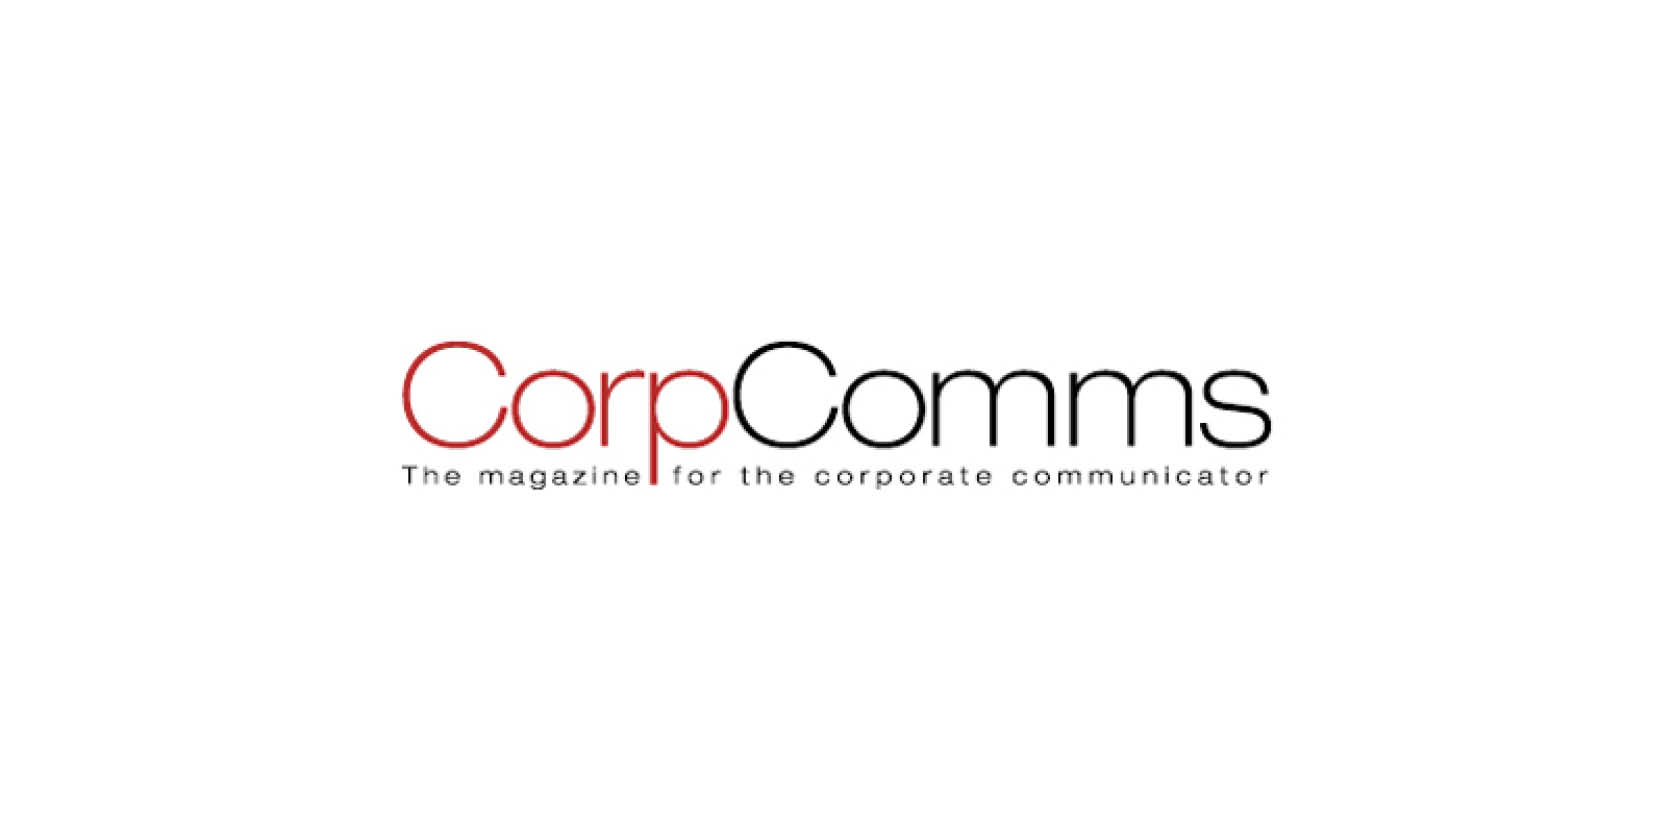 CorpComms: WHAT LIES UNDERNEATH THE INTERNET?